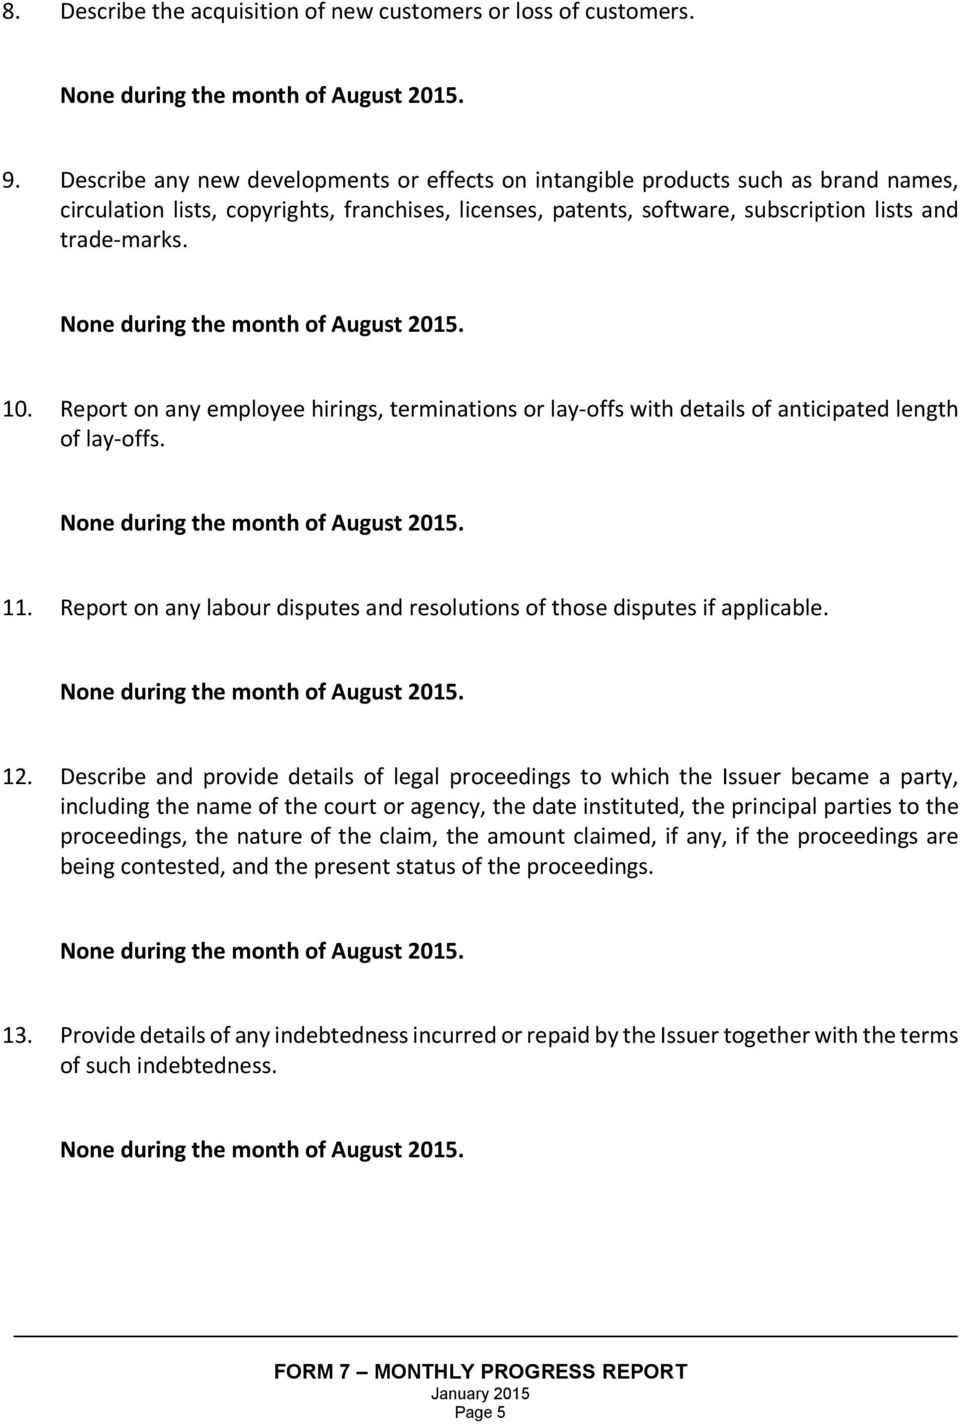 Report on any employee hirings, terminations or lay-offs with details of anticipated length of lay-offs. 11. Report on any labour disputes and resolutions of those disputes if applicable. 12.